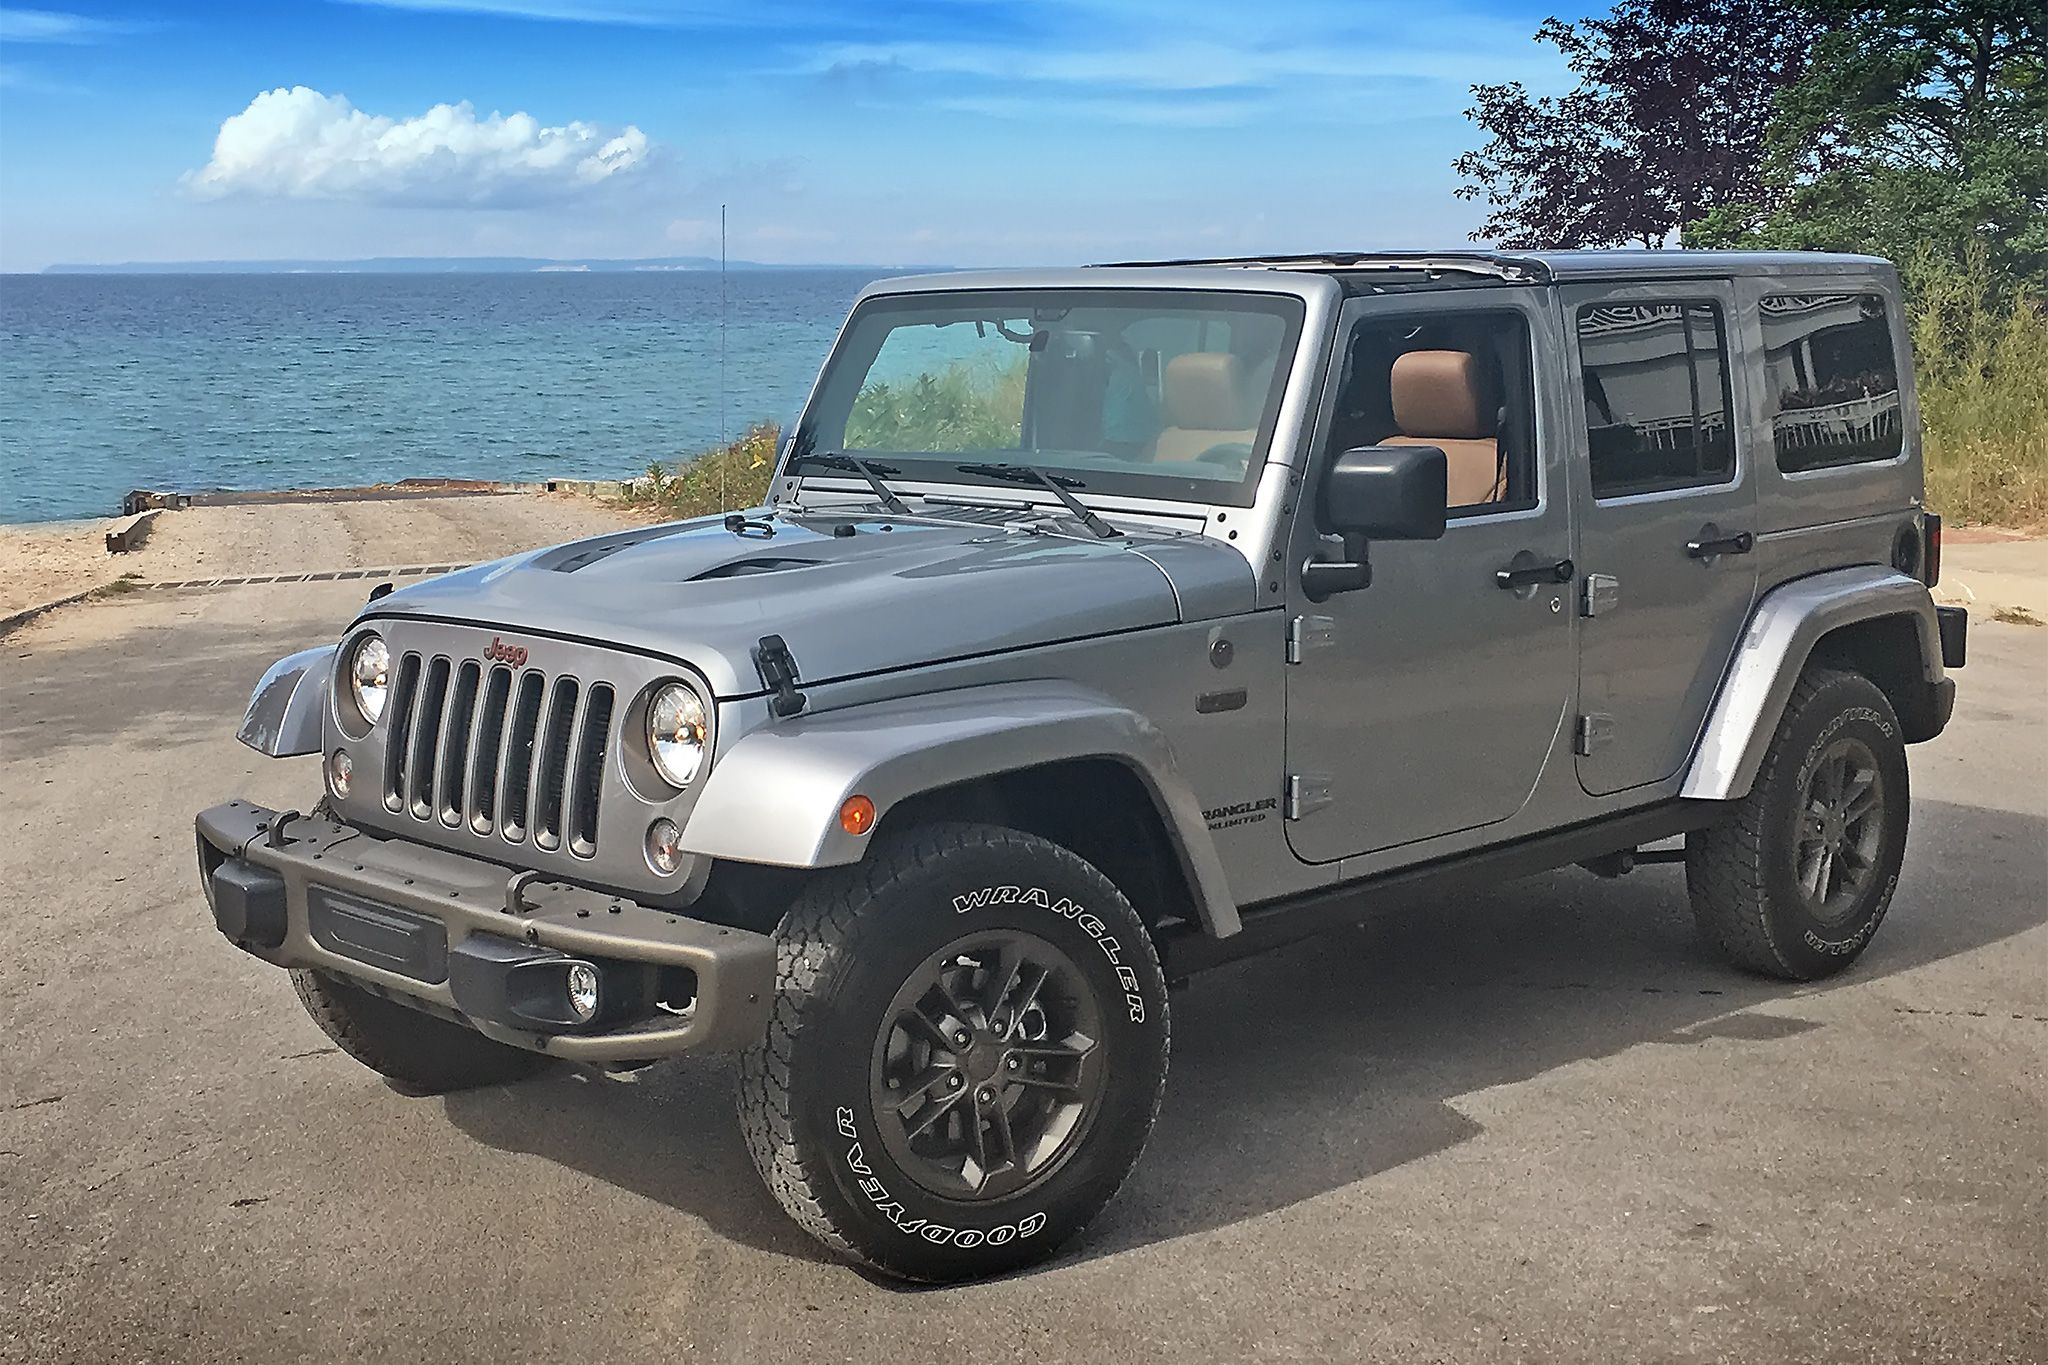 2016 Jeep Wrangler Unlimited front three quarter 04 2048—1365